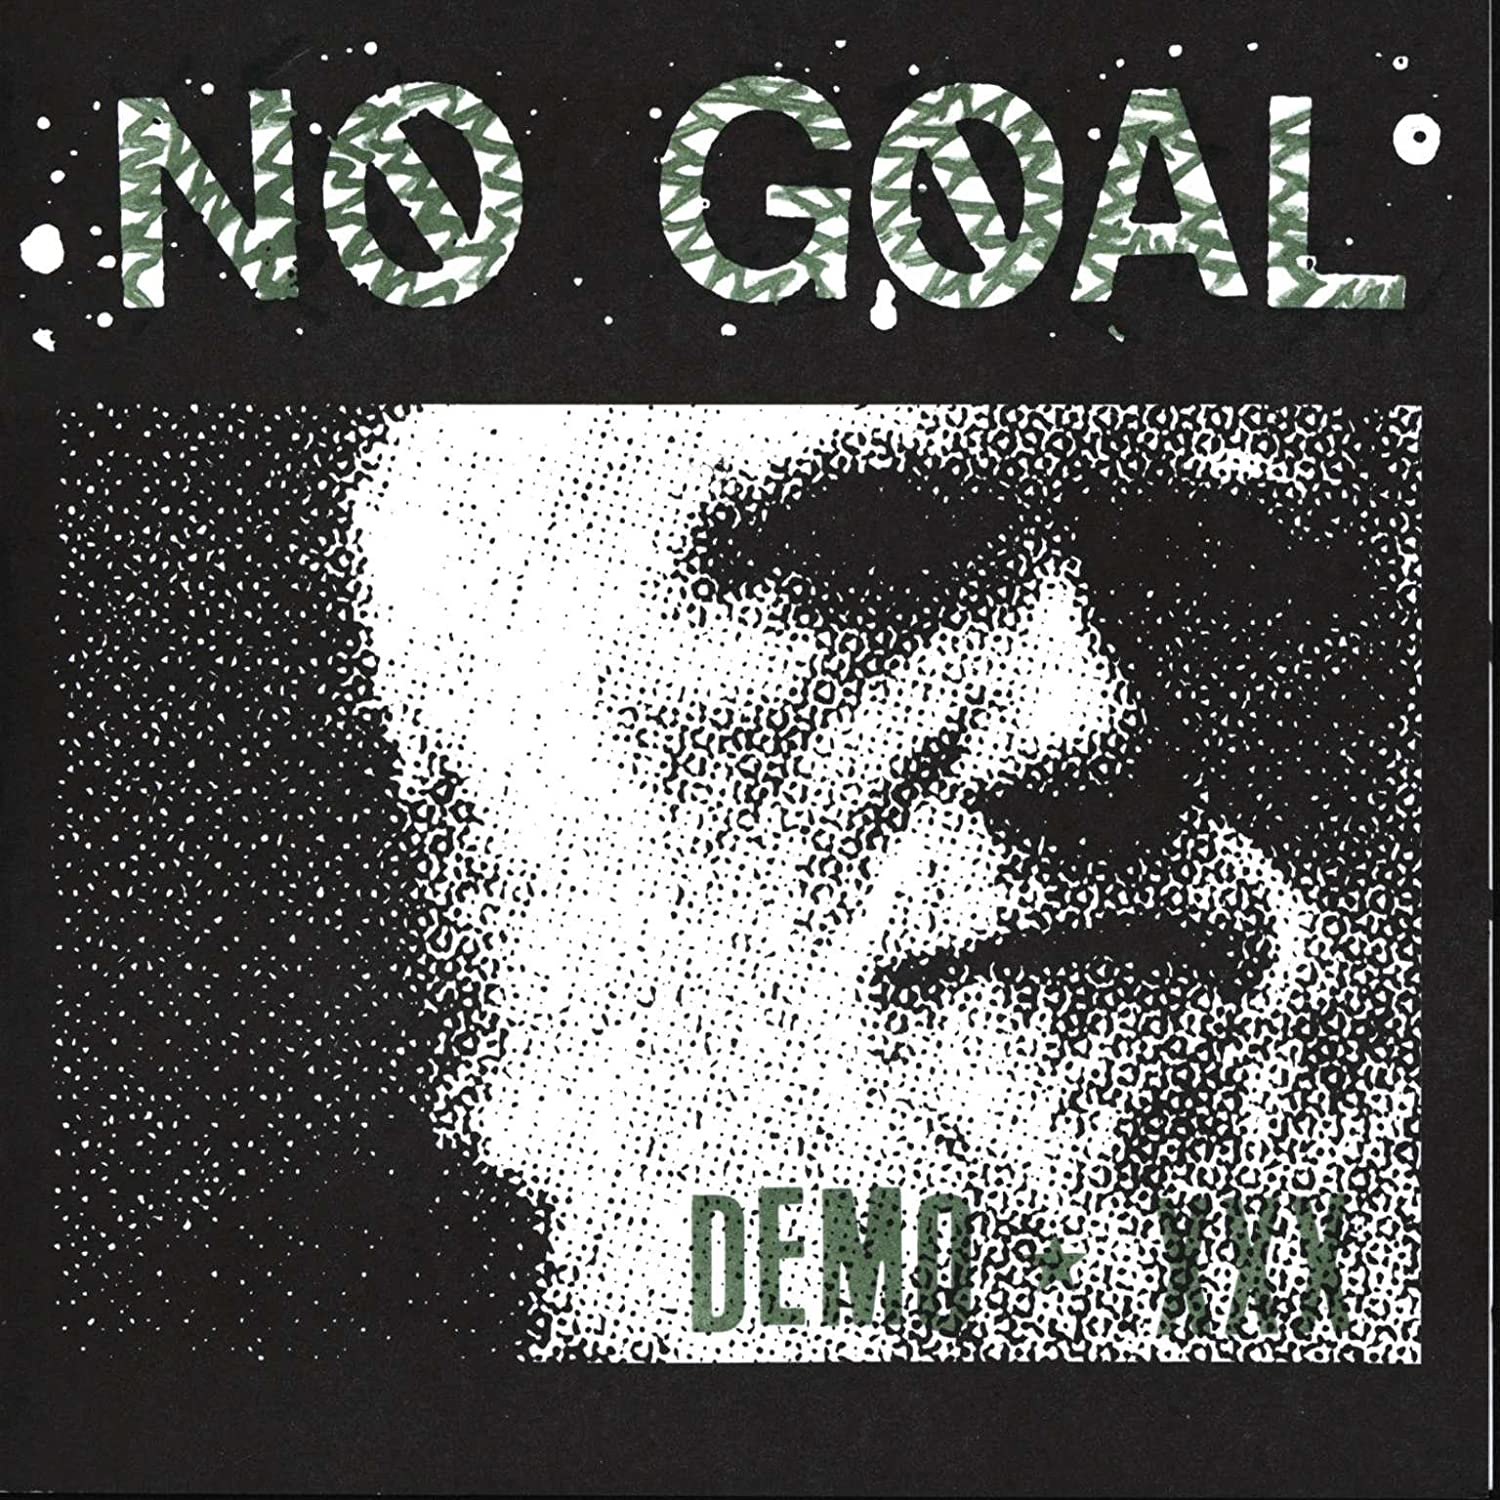 Demo XXX [Vinyl Single]: Amazon co uk: Music